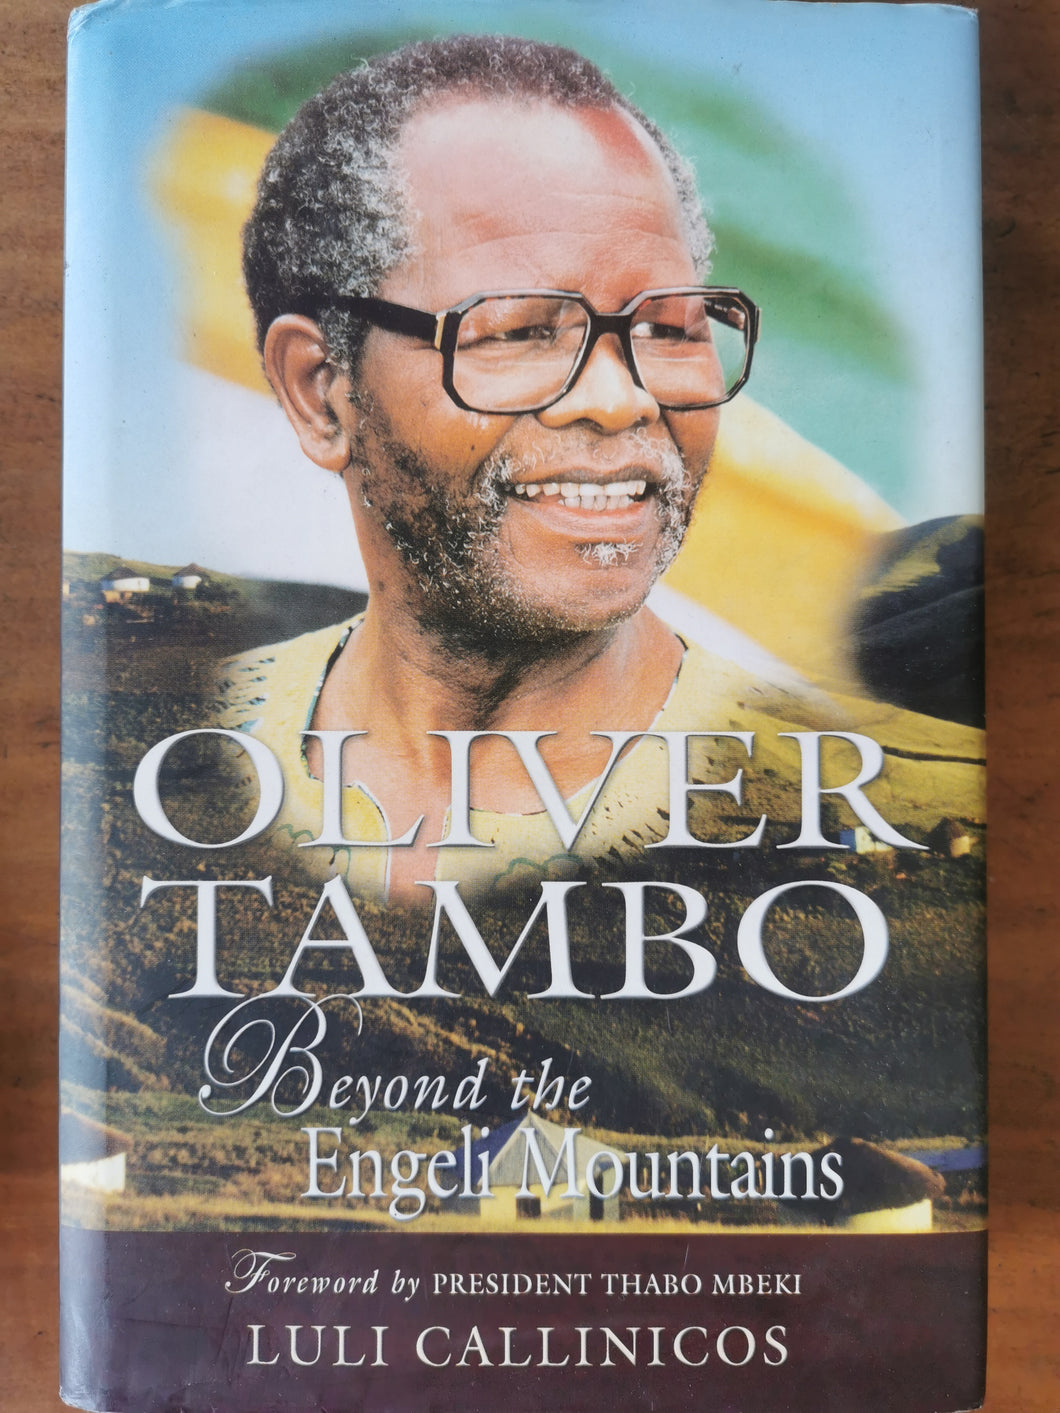 Oliver Tambo - Beyond the Engeli Mountains by Luli Callinicos